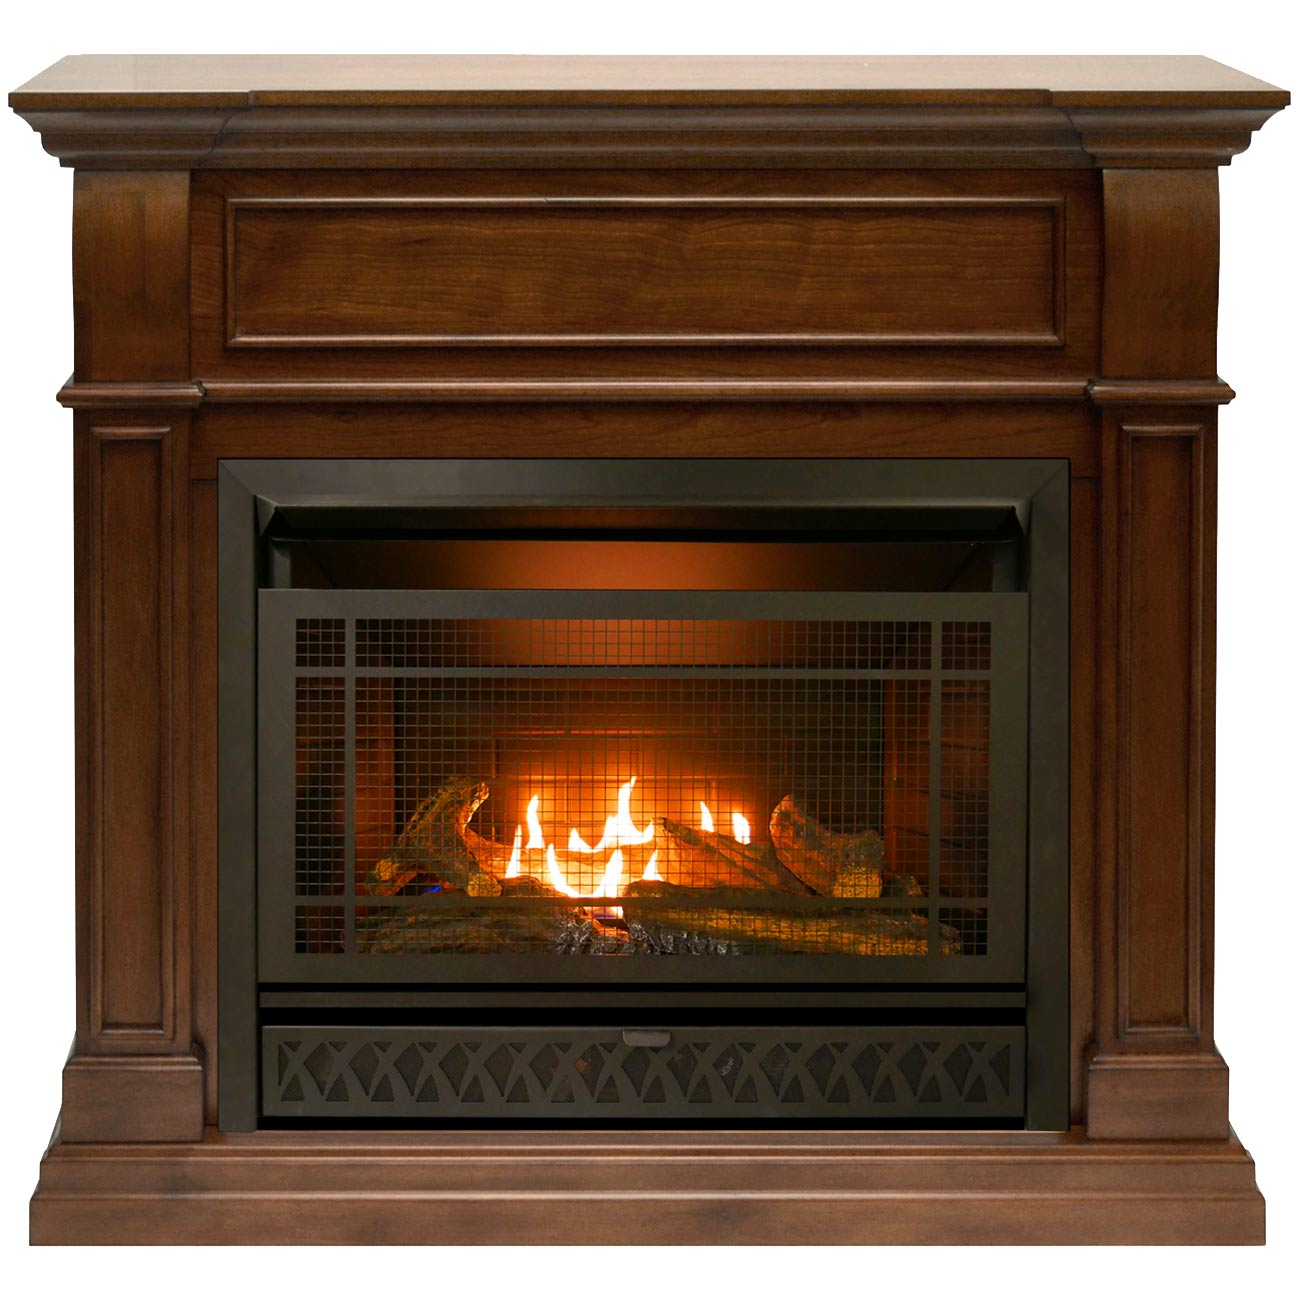 Walnut Finish FBD28T J W ProCom Heating